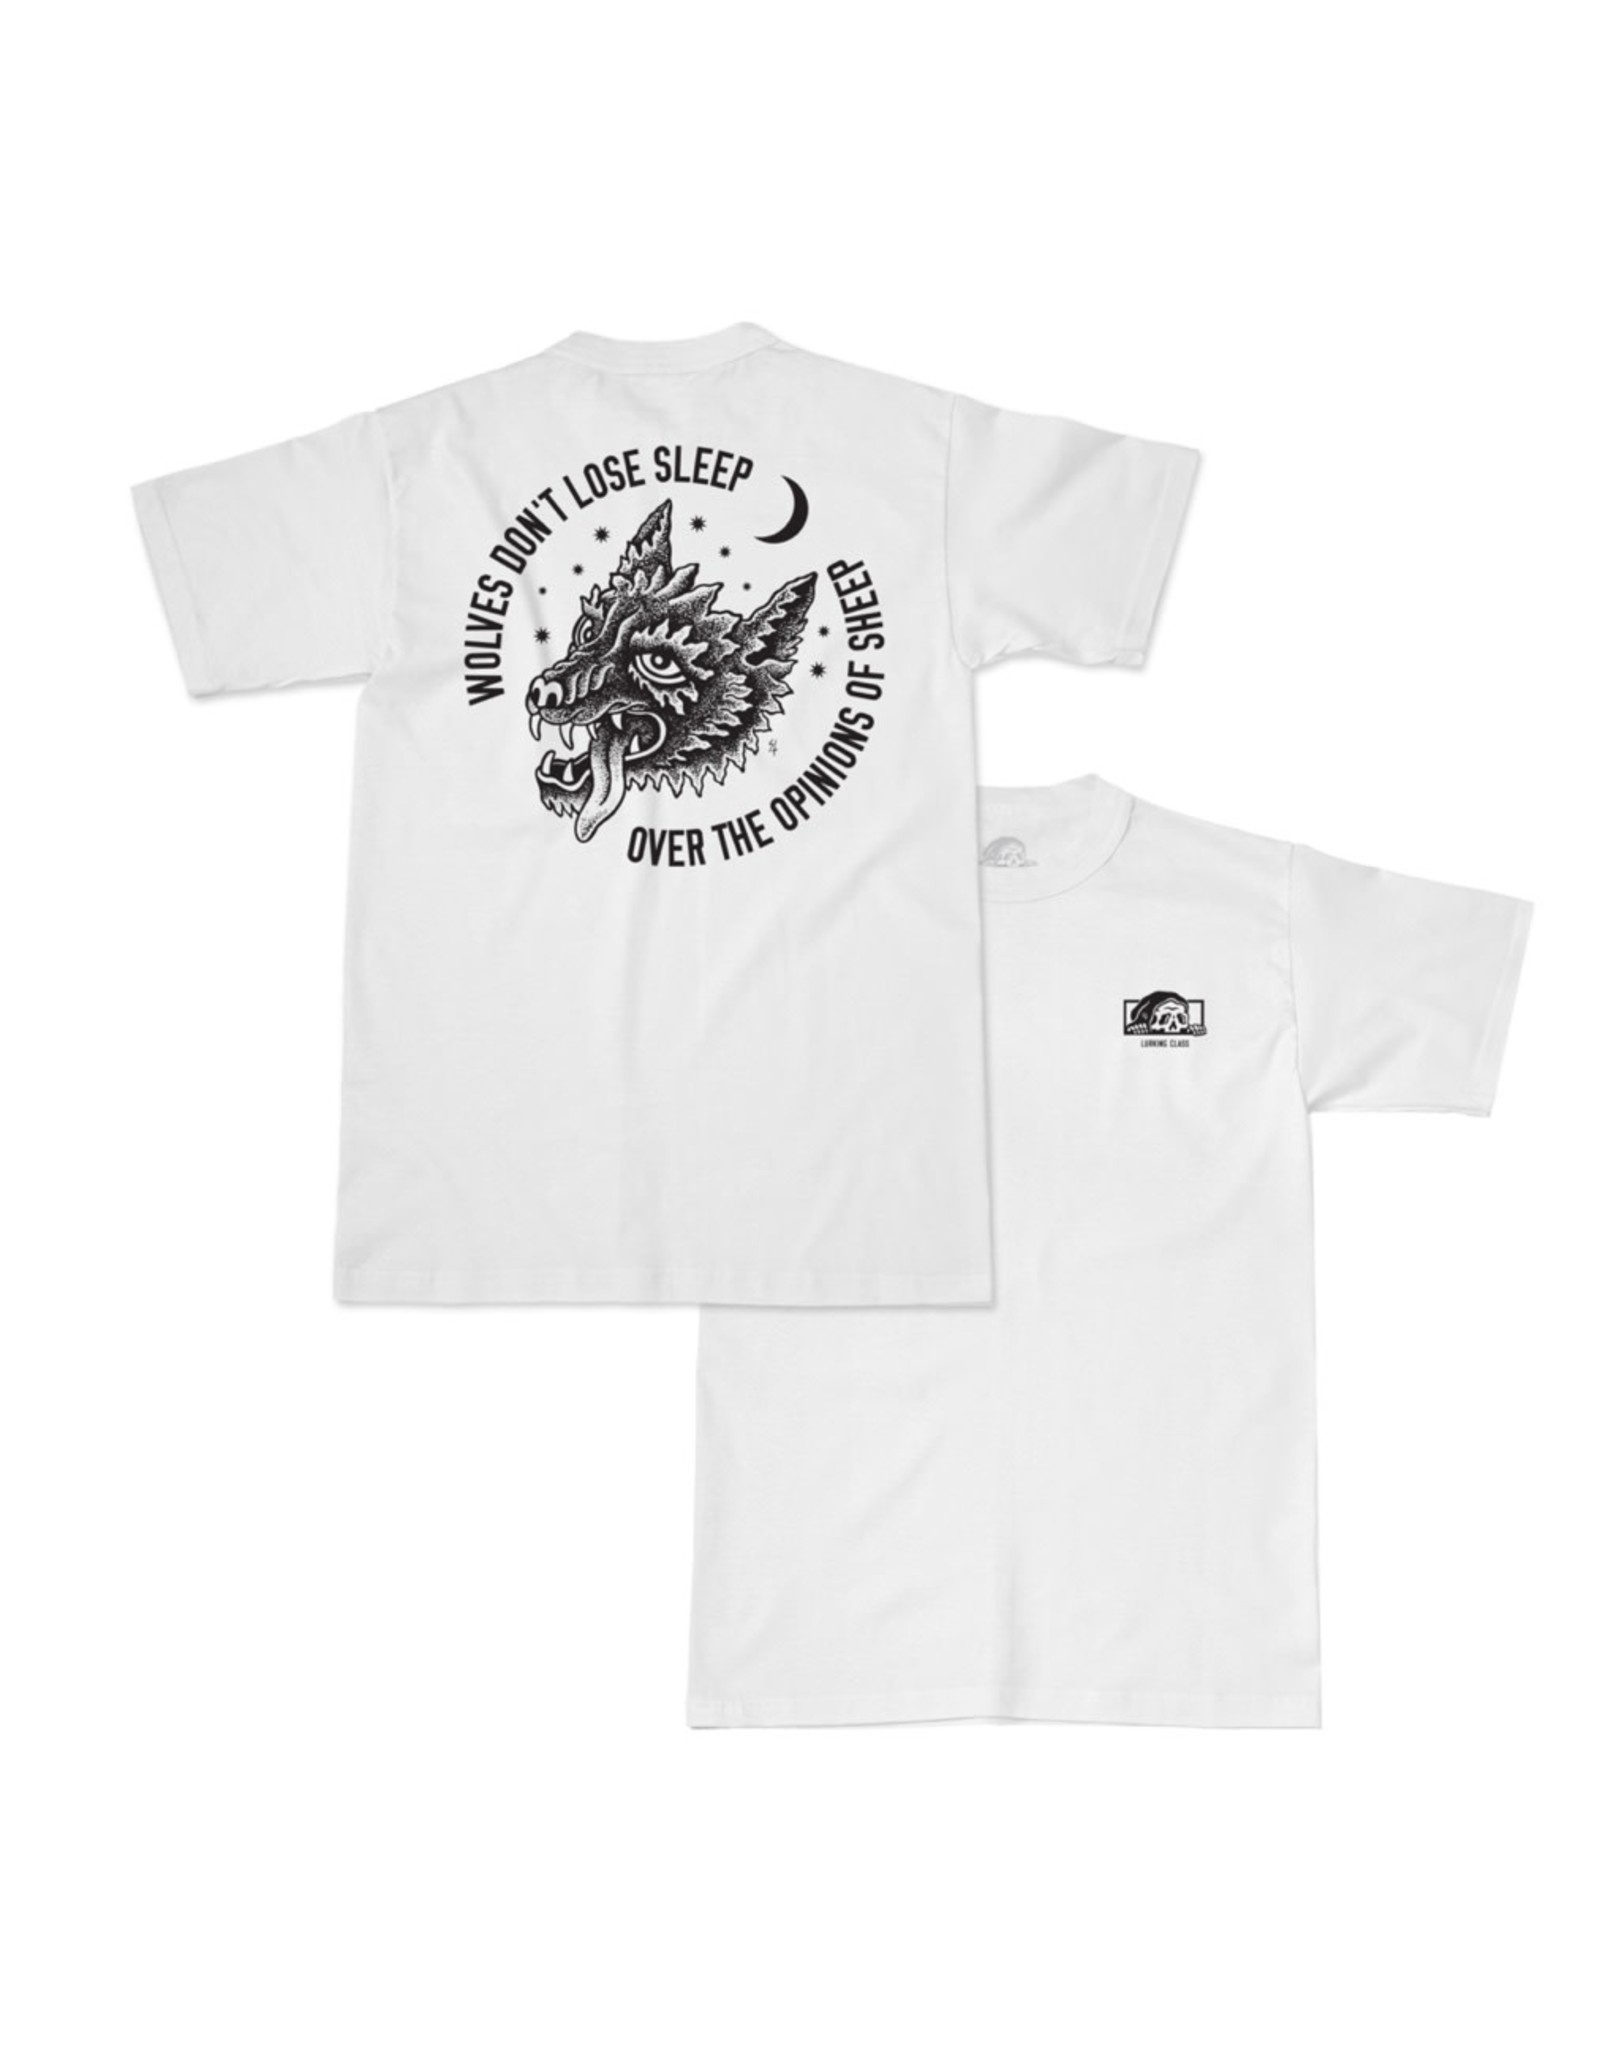 Sketchy Tank Opinions Tee